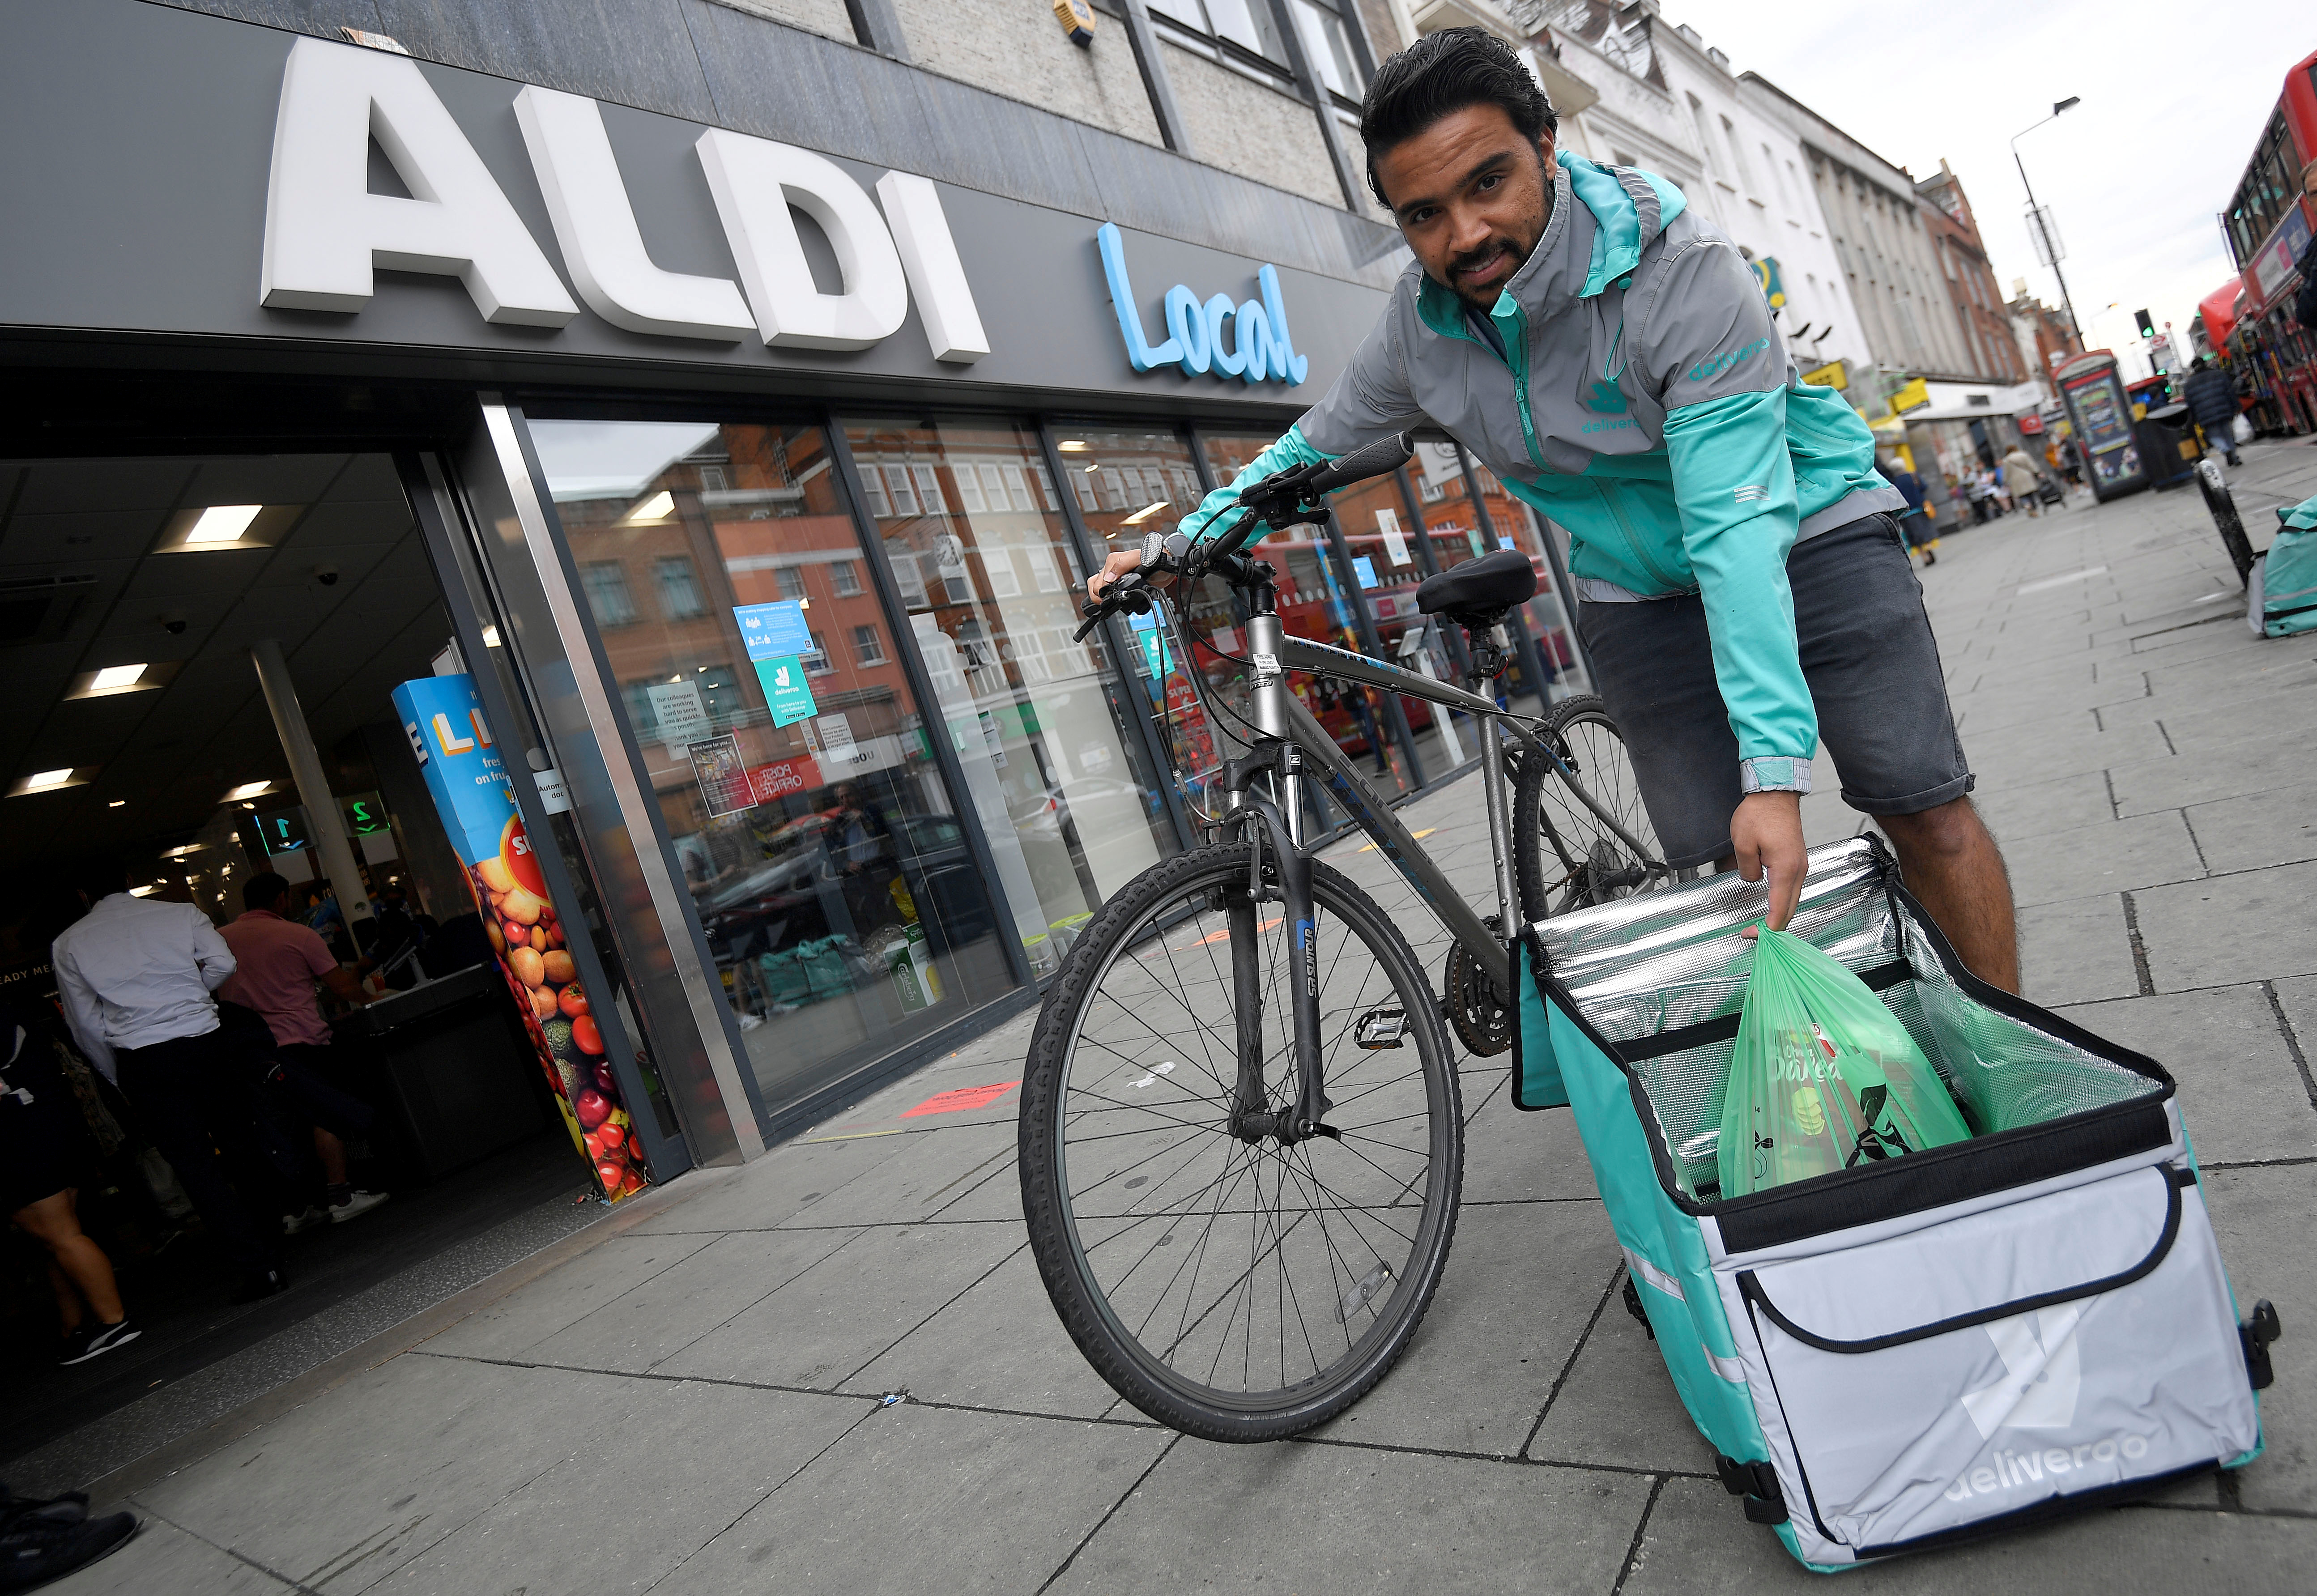 Abdelaziz Abdou, a Deliveroo delivery rider, poses with a bag of Aldi groceries, as discount supermarket chains Aldi and Lidl look poised to accelerate their push into home delivery to satisfy burgeoning demand for online grocery shopping in a shift expected to endure beyond the coronavirus crisis, in London, Britain, June 17, 2020.  REUTERS/Toby Melville/File Photo